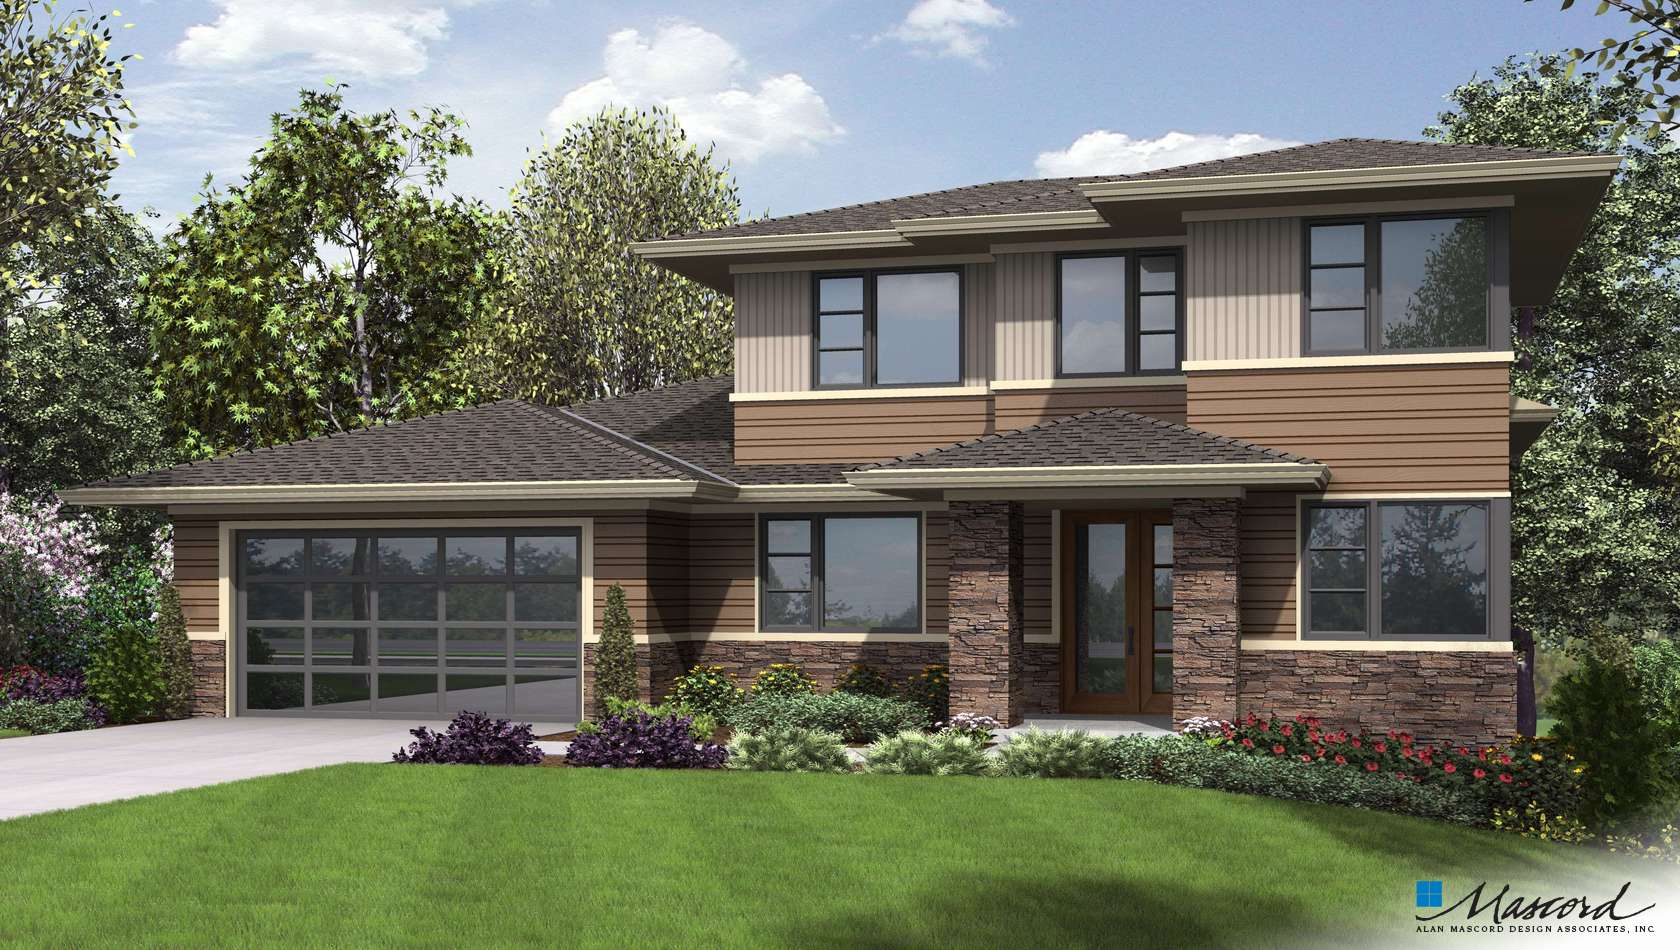 Mascord House Plan 23113: The Springlake